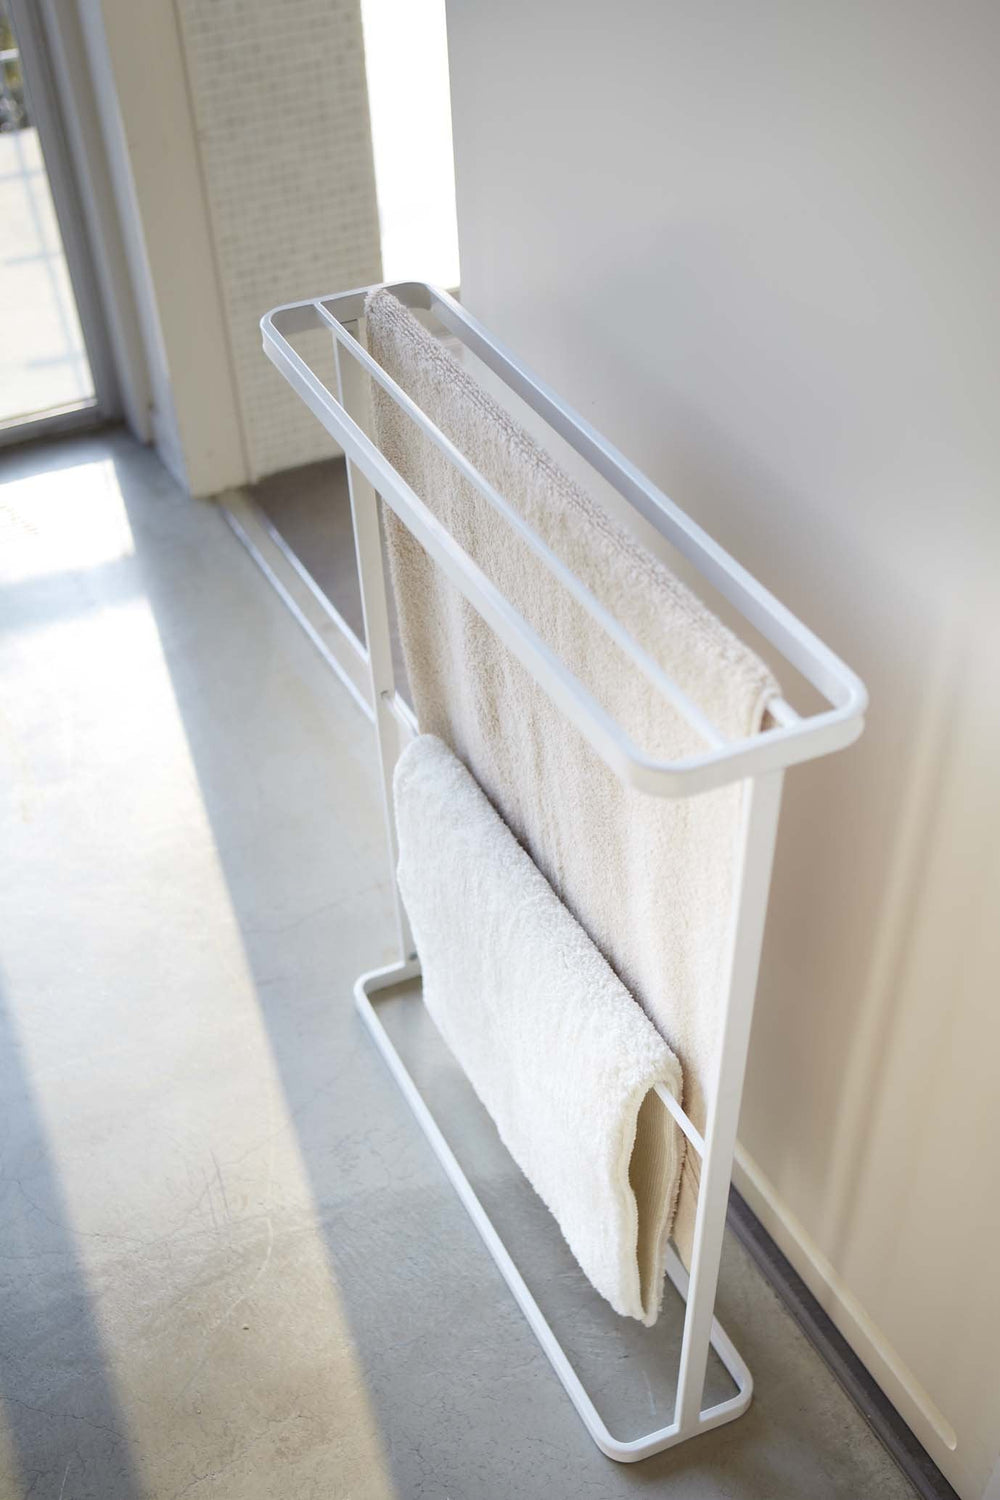 Yamazaki's White towel rack shown from above hung with two towels